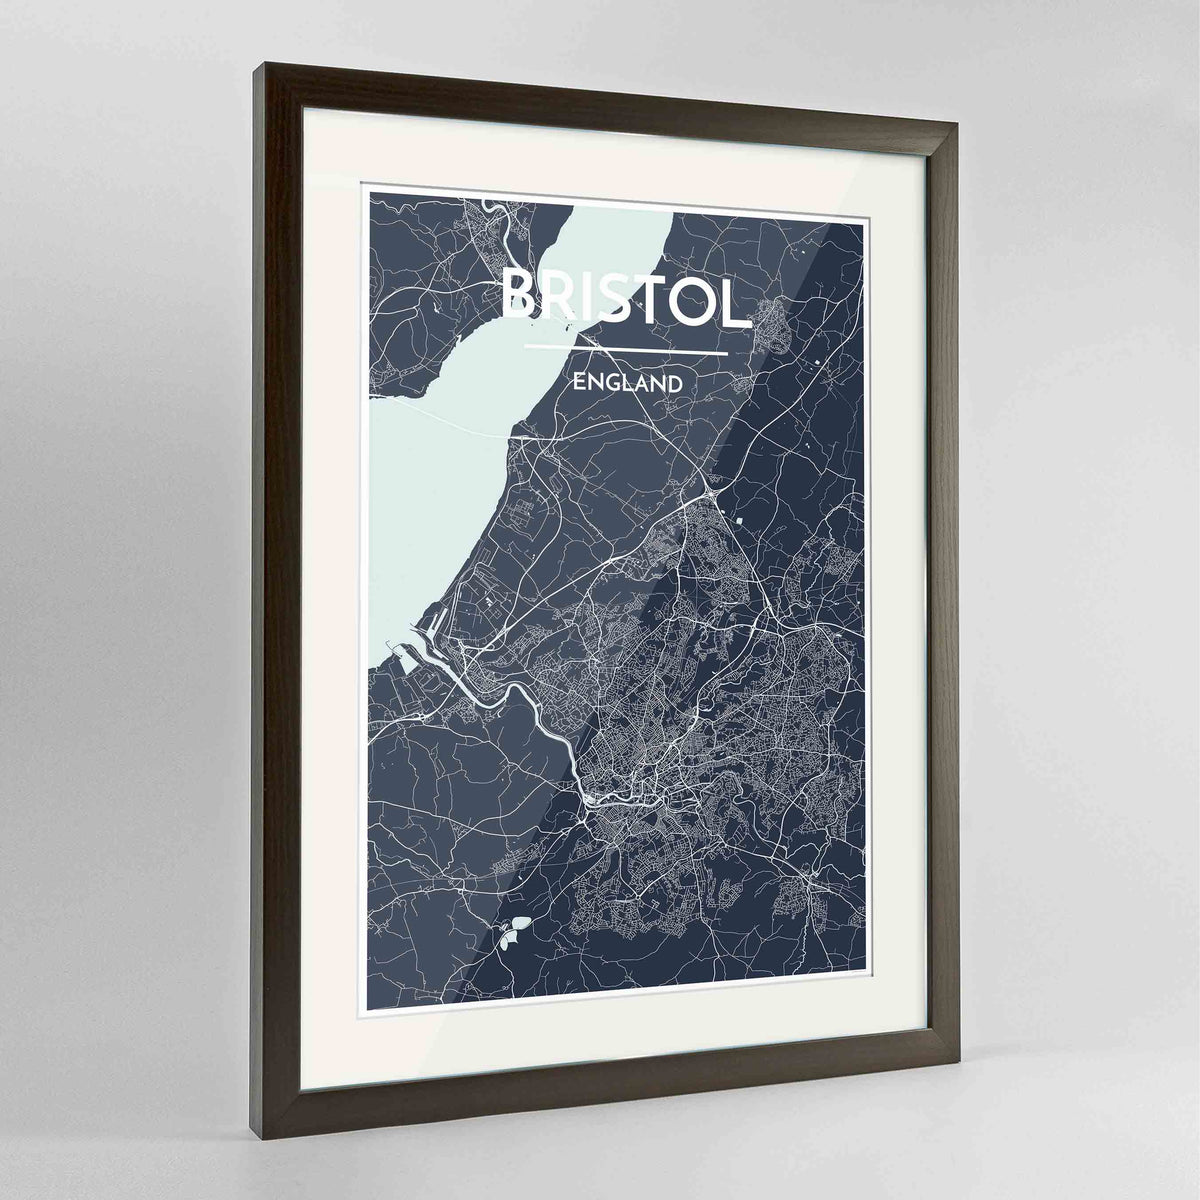 "Framed Bristol Map Art Print 24x36"" Contemporary Walnut frame Point Two Design Group"